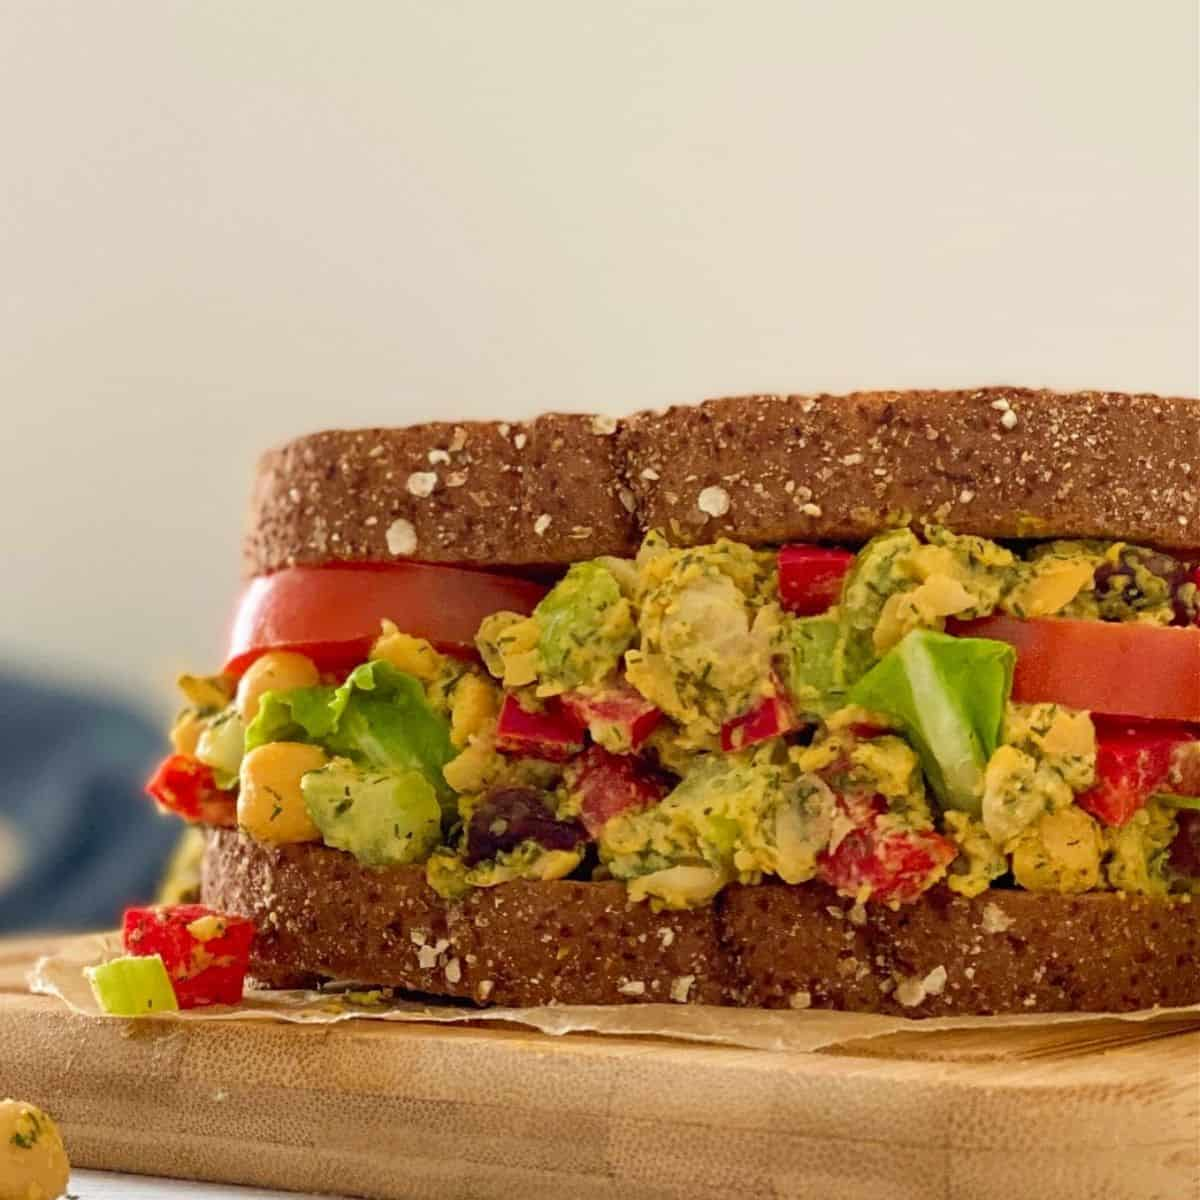 Sandwich resting on cutting board with chickpeas, tomato, celery, peppers and dill.